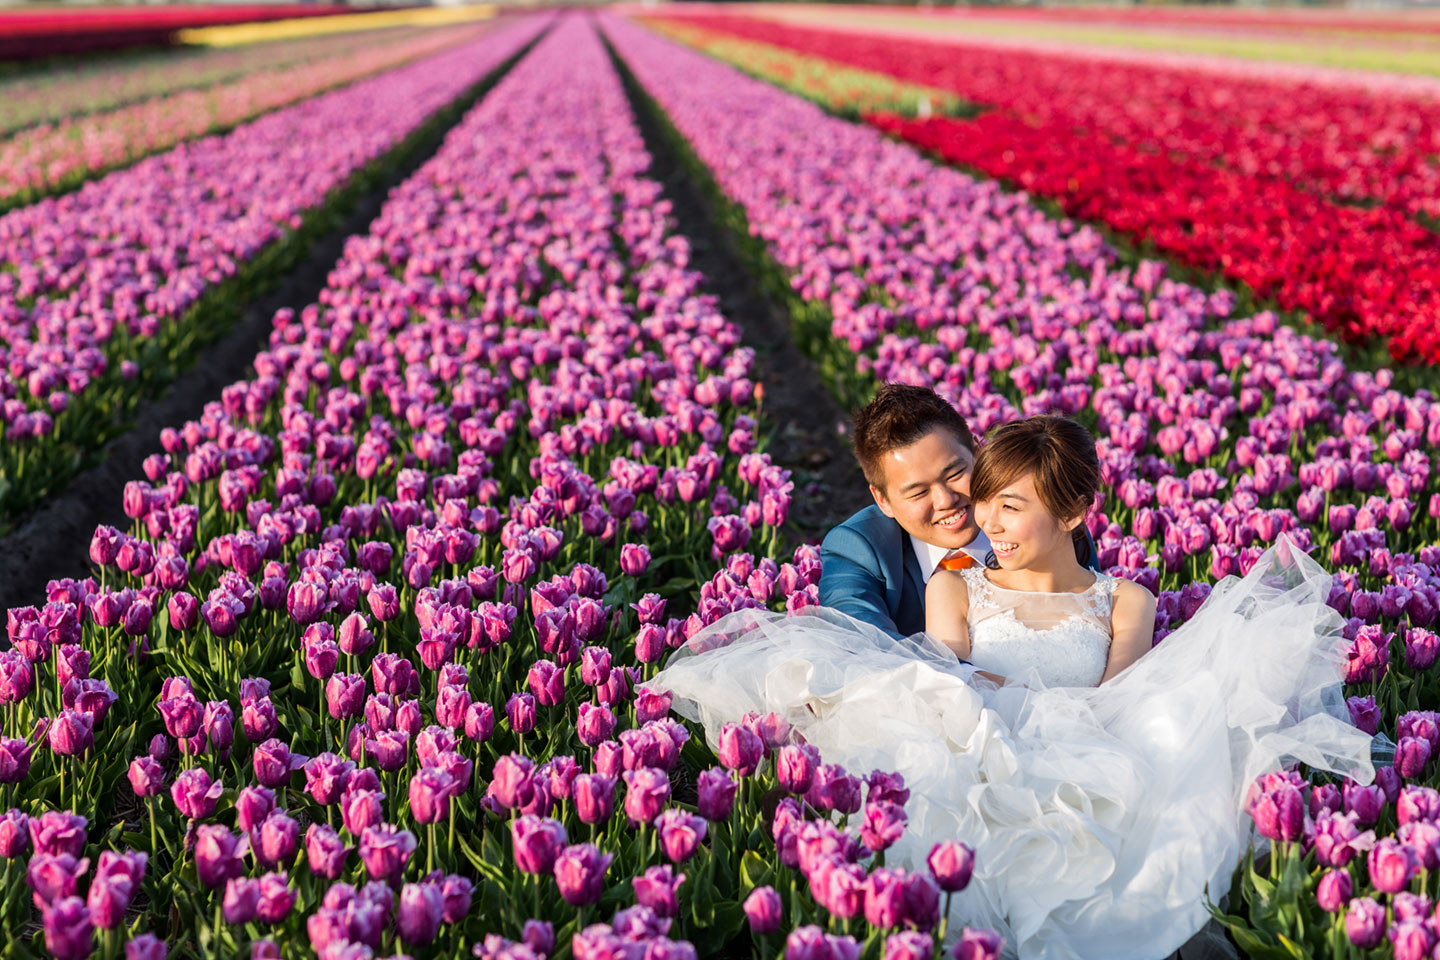 pre wedding photoshoot tulips Keukenhof